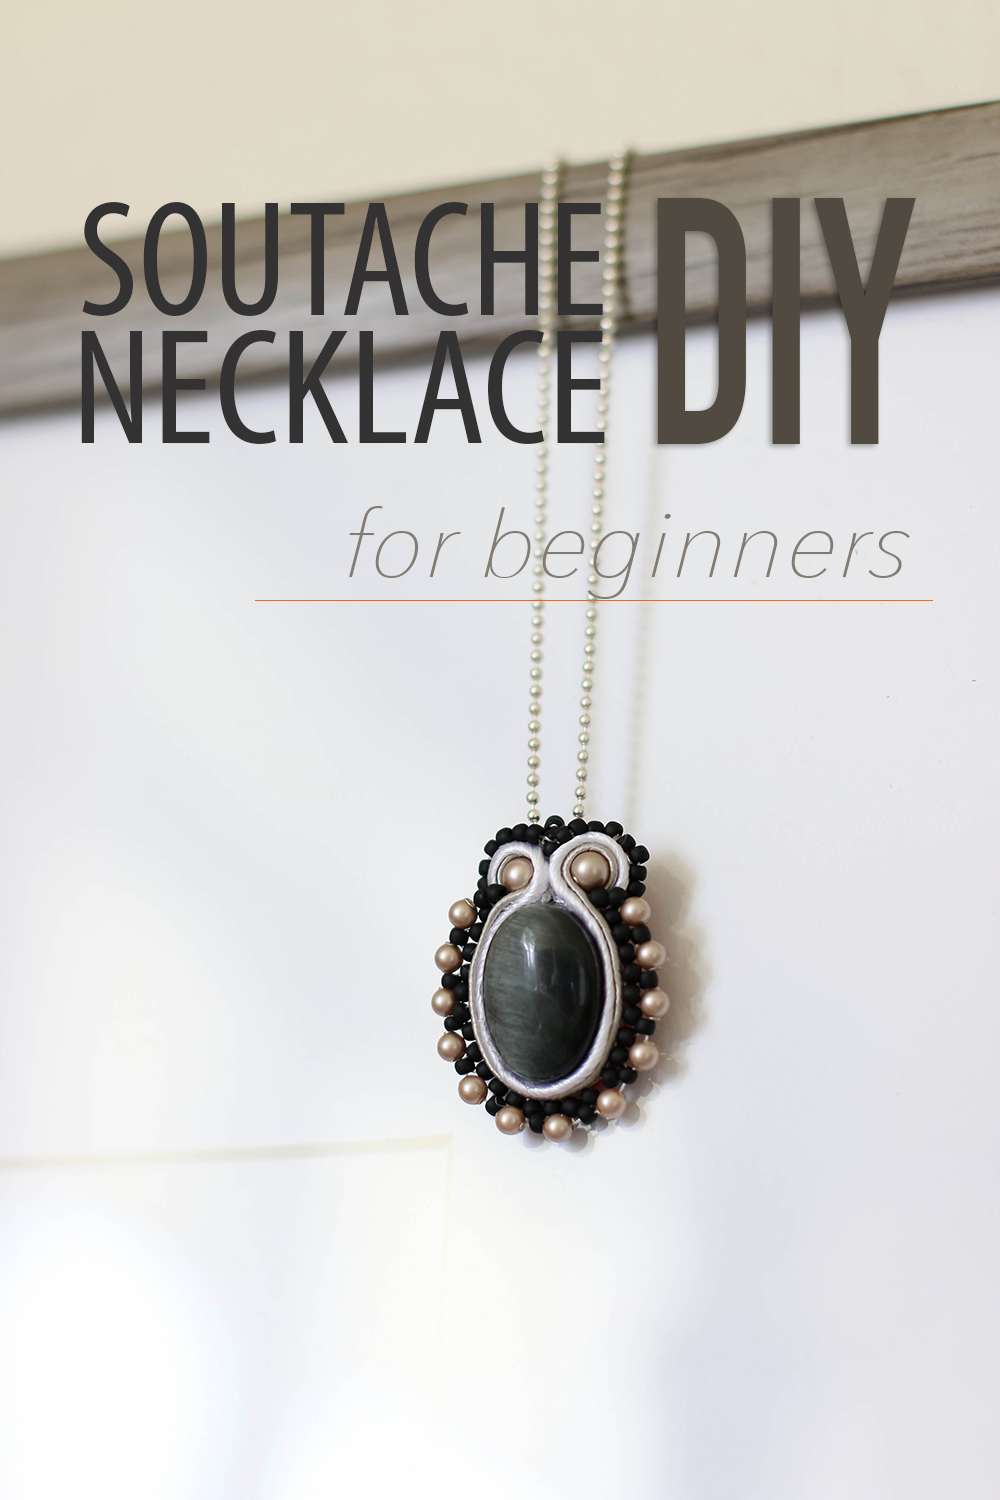 Soutache Necklace tutorial-finished project feature